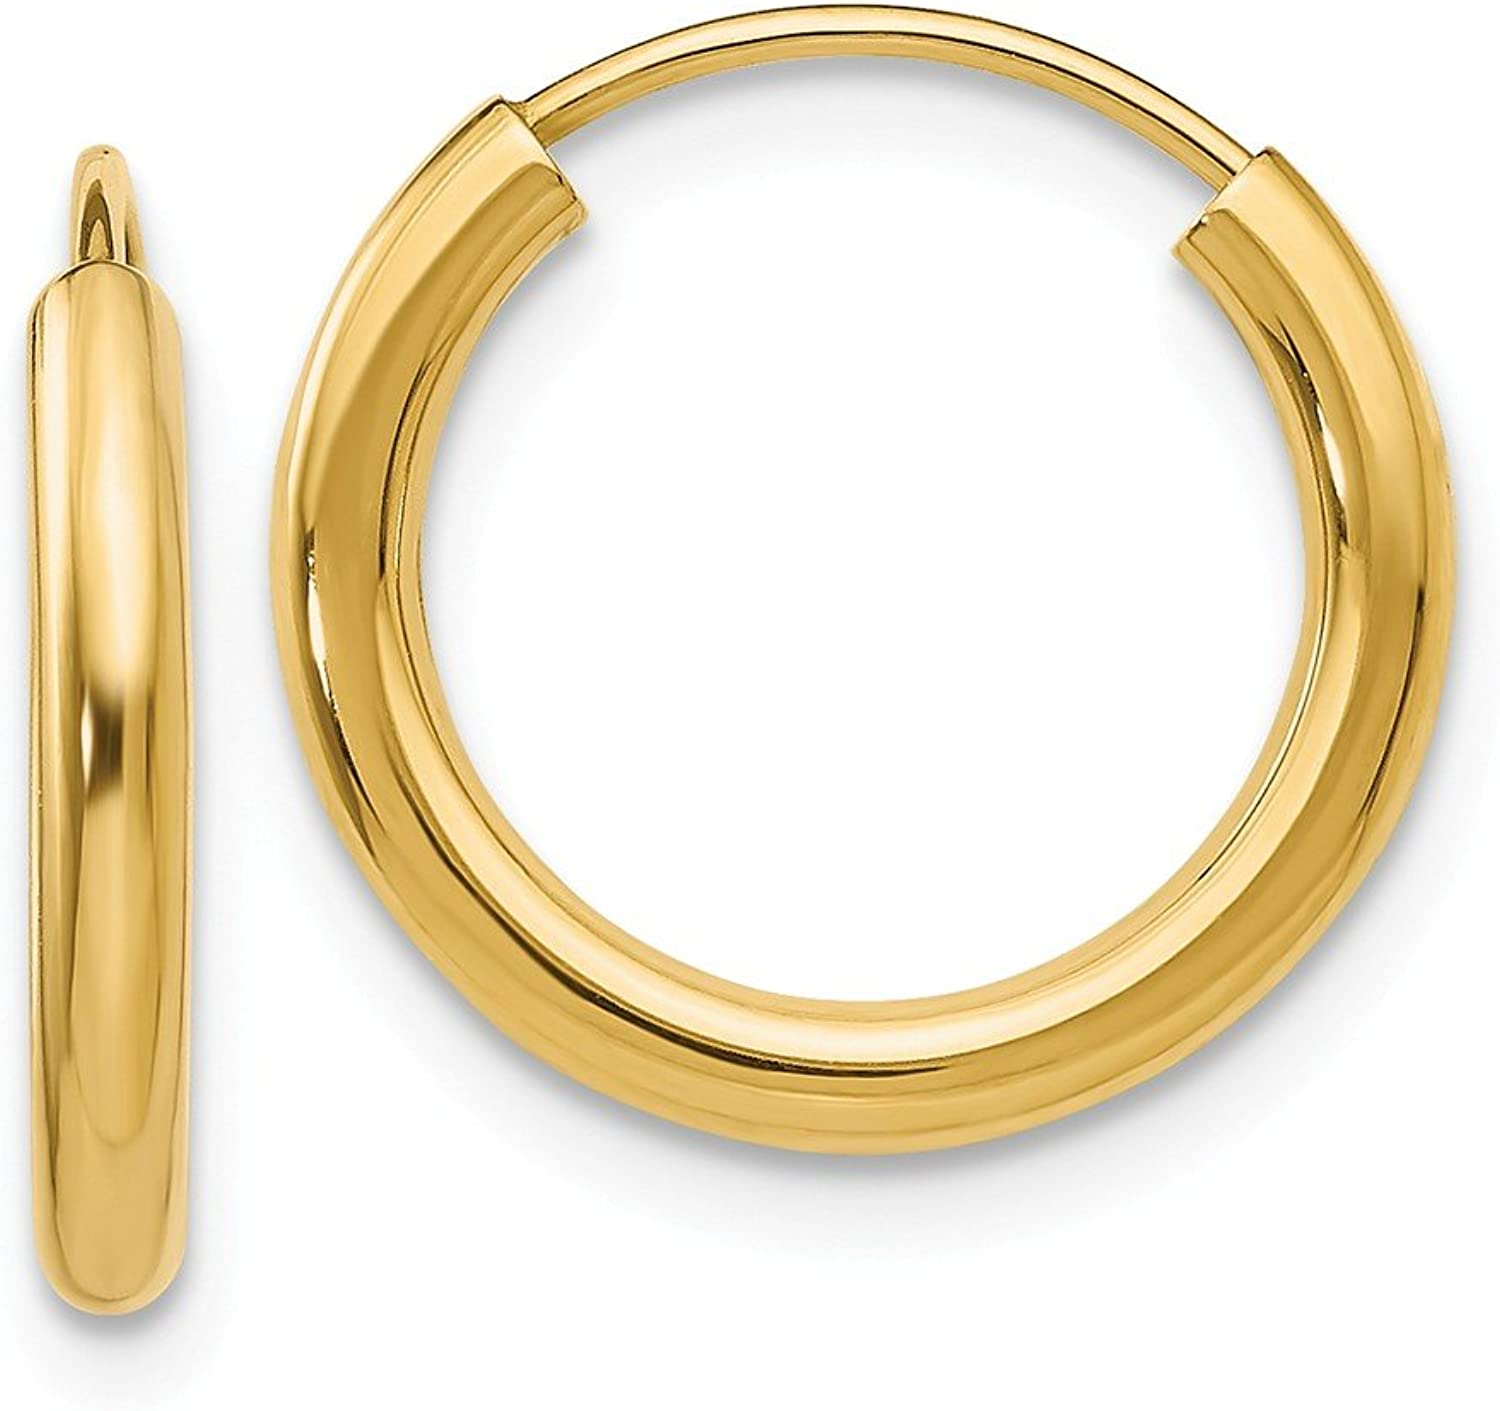 Beautiful Yellow gold 14K Yellowgold 14k Polished Round Endless 2mm Hoop Earrings